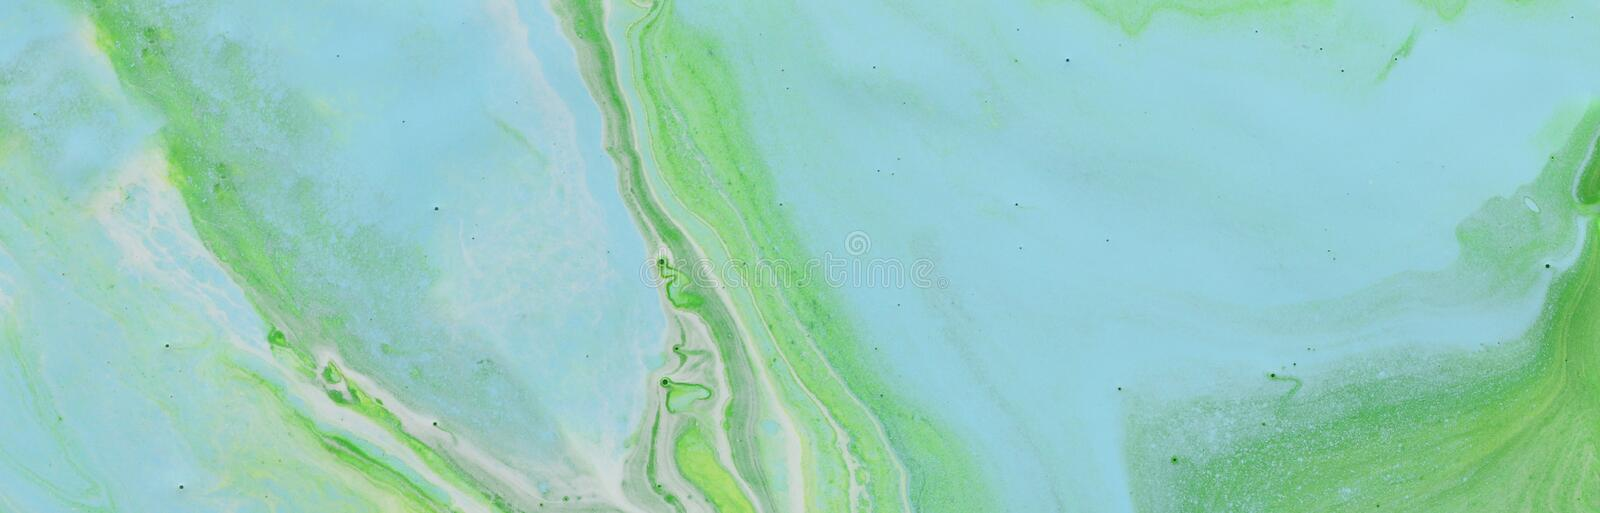 Photography of abstract marbleized effect background. blue and green creative colors. Beautiful paint. banner.  royalty free stock photo